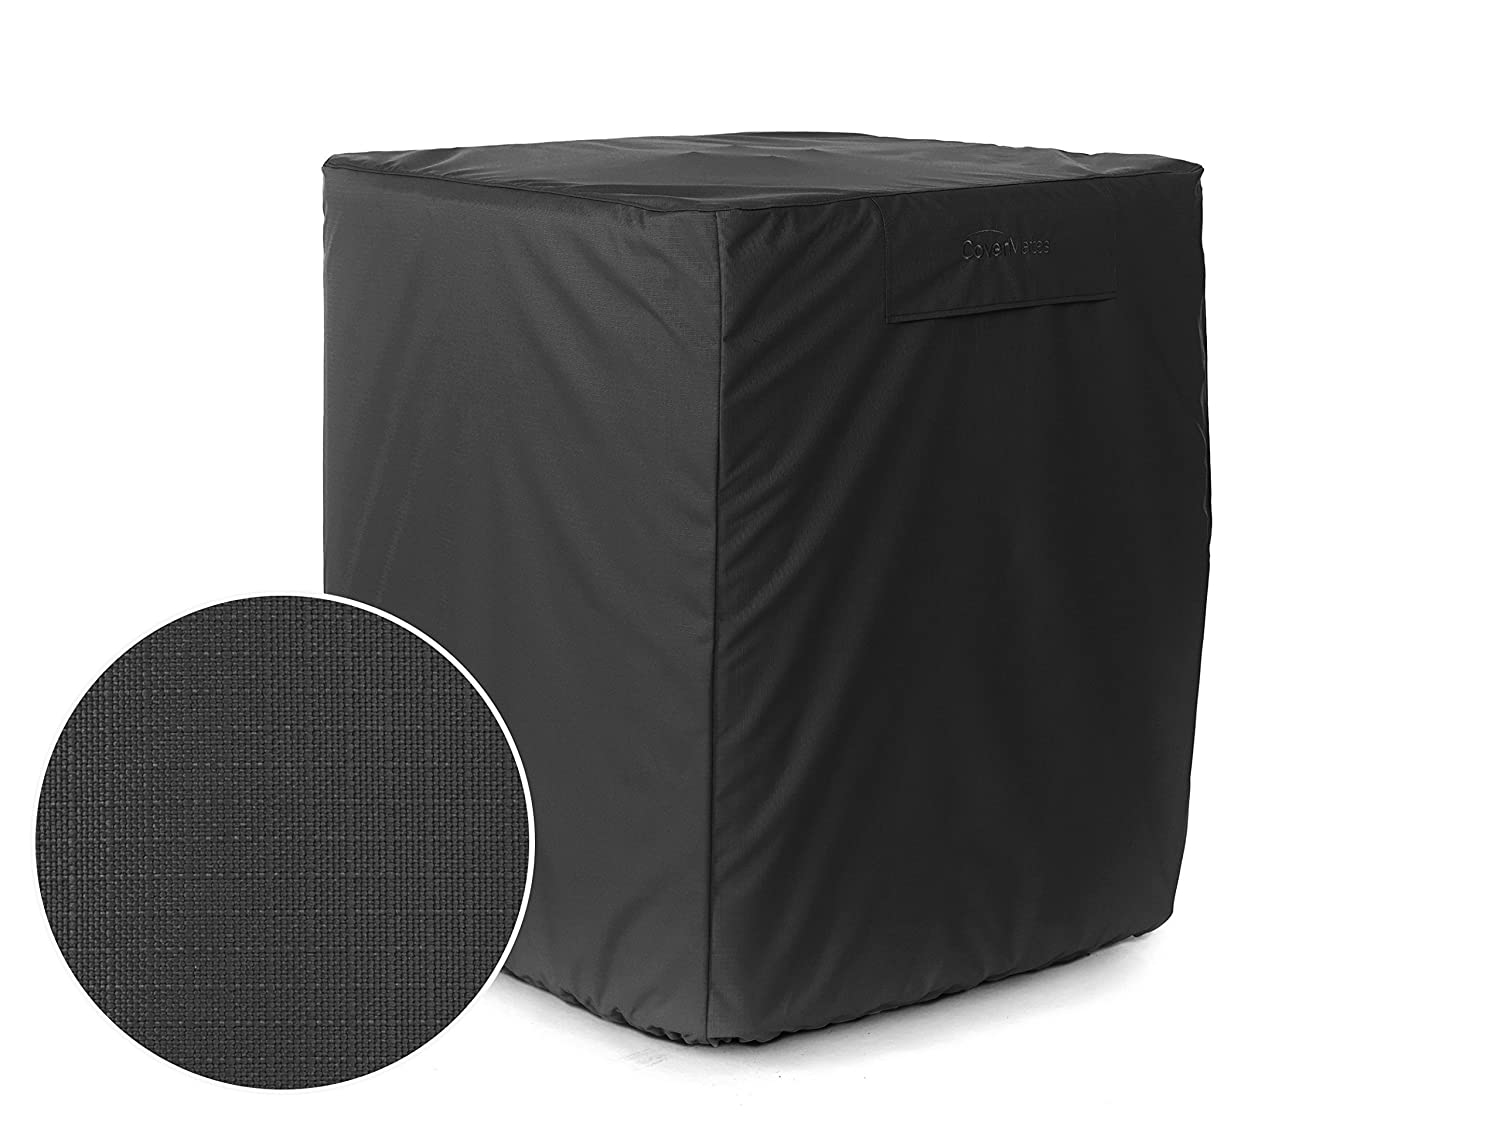 CoverMates - Air Conditioner Cover - Fits 24 Width x 24 Depth x 22 Height - Classic - 12-Gauge Vinyl - Mesh Vent For Airflow - Elastic Bottom For Secure Fit - 2 YR Warranty - Water Resistant - Green The Cover Store